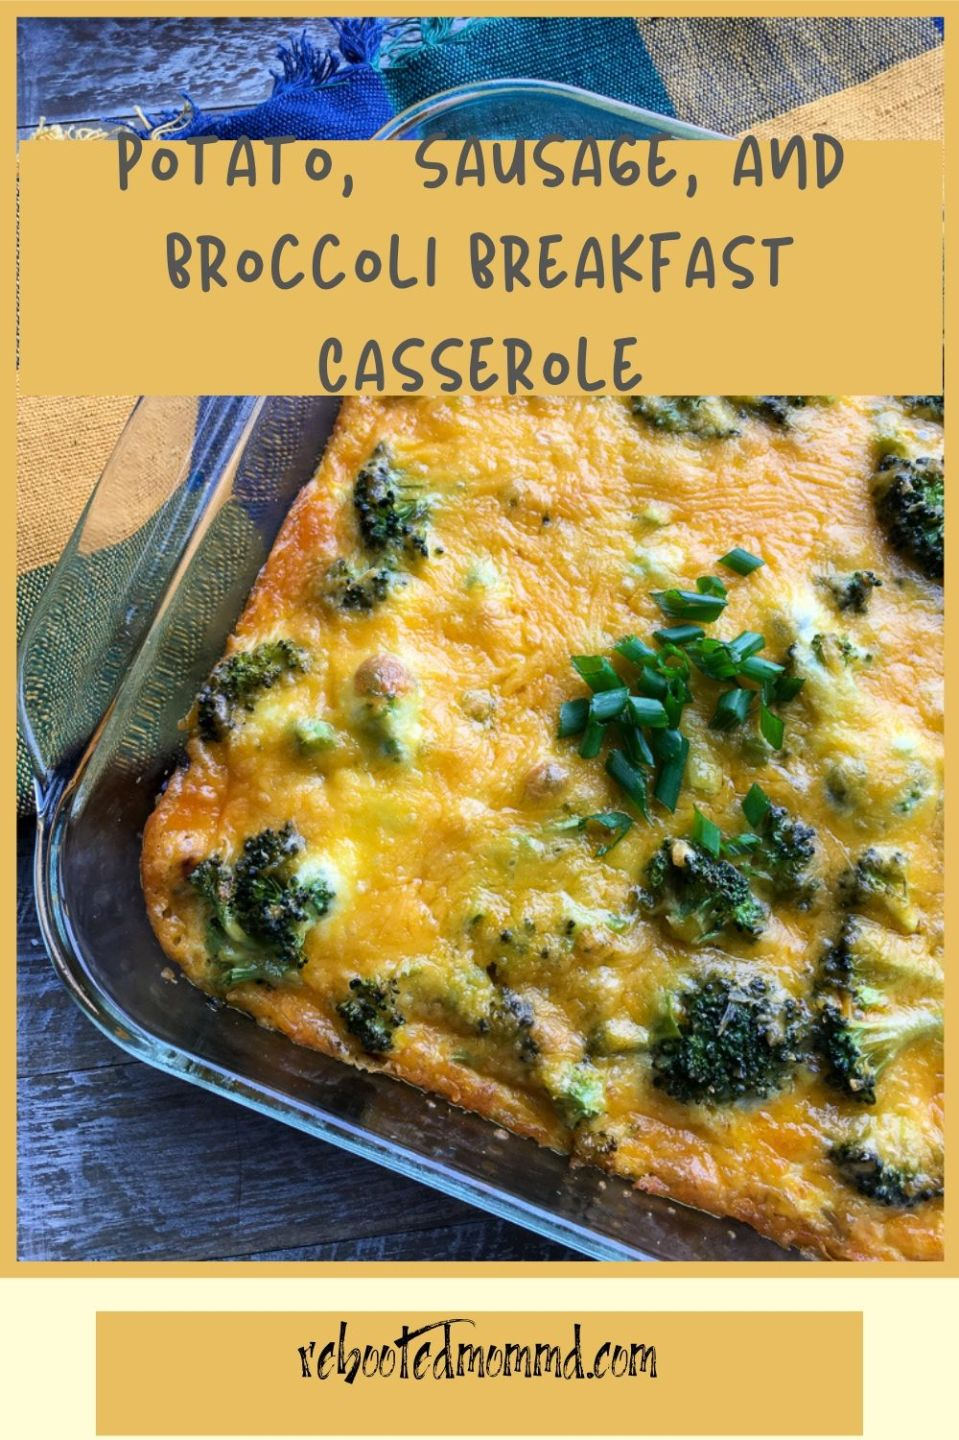 Potato, Sausage, and Broccoli Breakfast Casserole